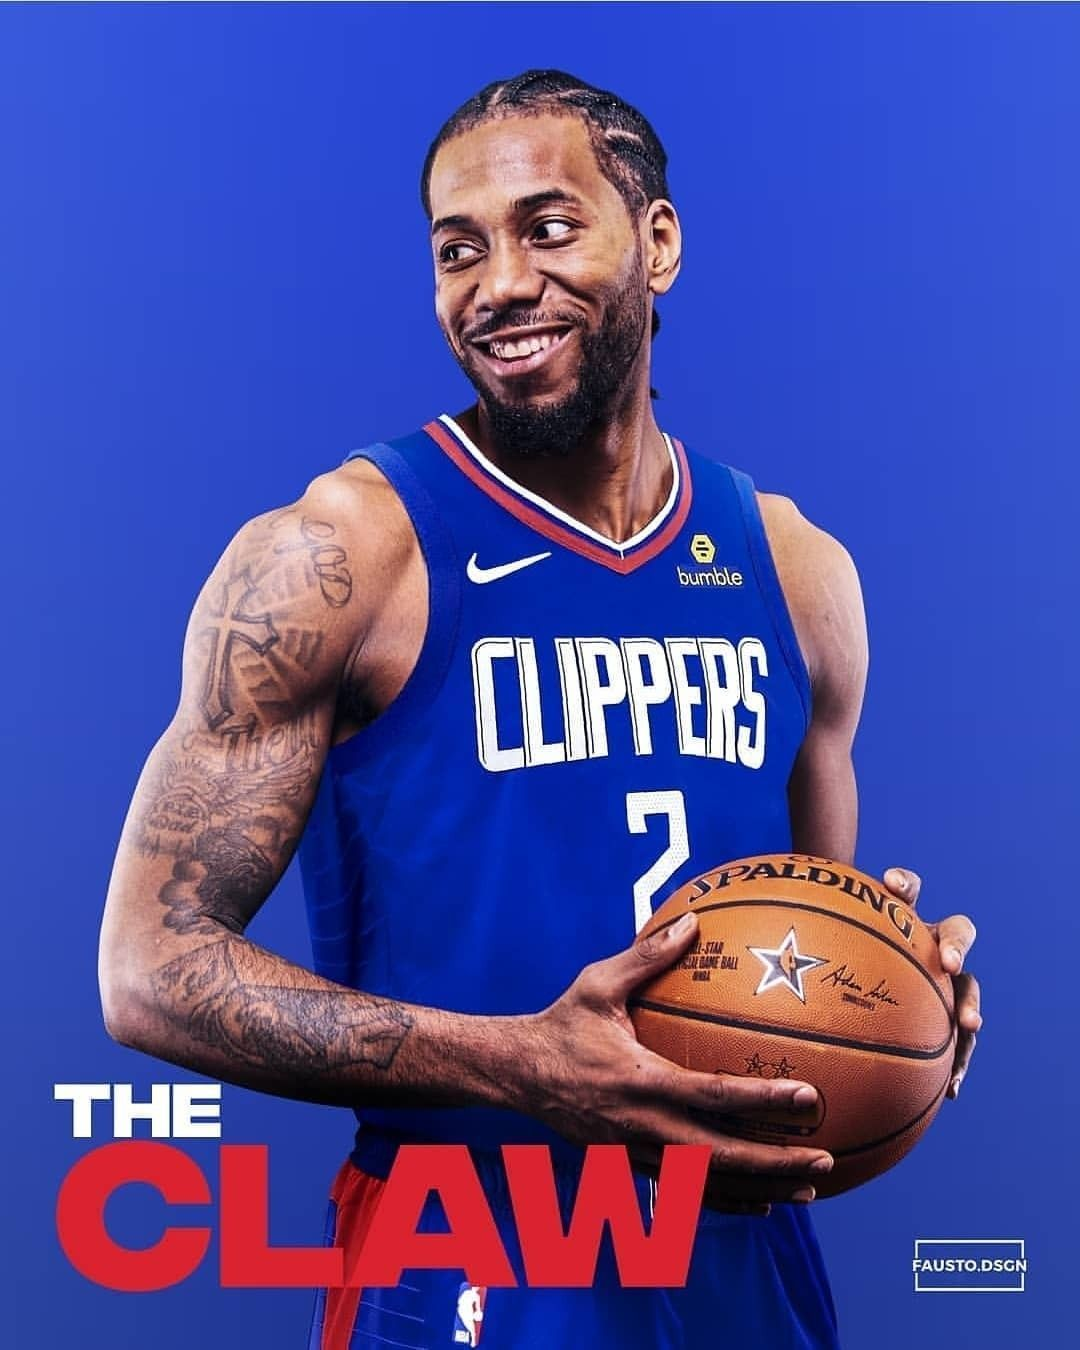 Kawhi Lenard Picks Clippers After Historic Commitment To Acqurie Paul George From Okc Culture News Nba Basketball Teams Nba Players Best Nba Players